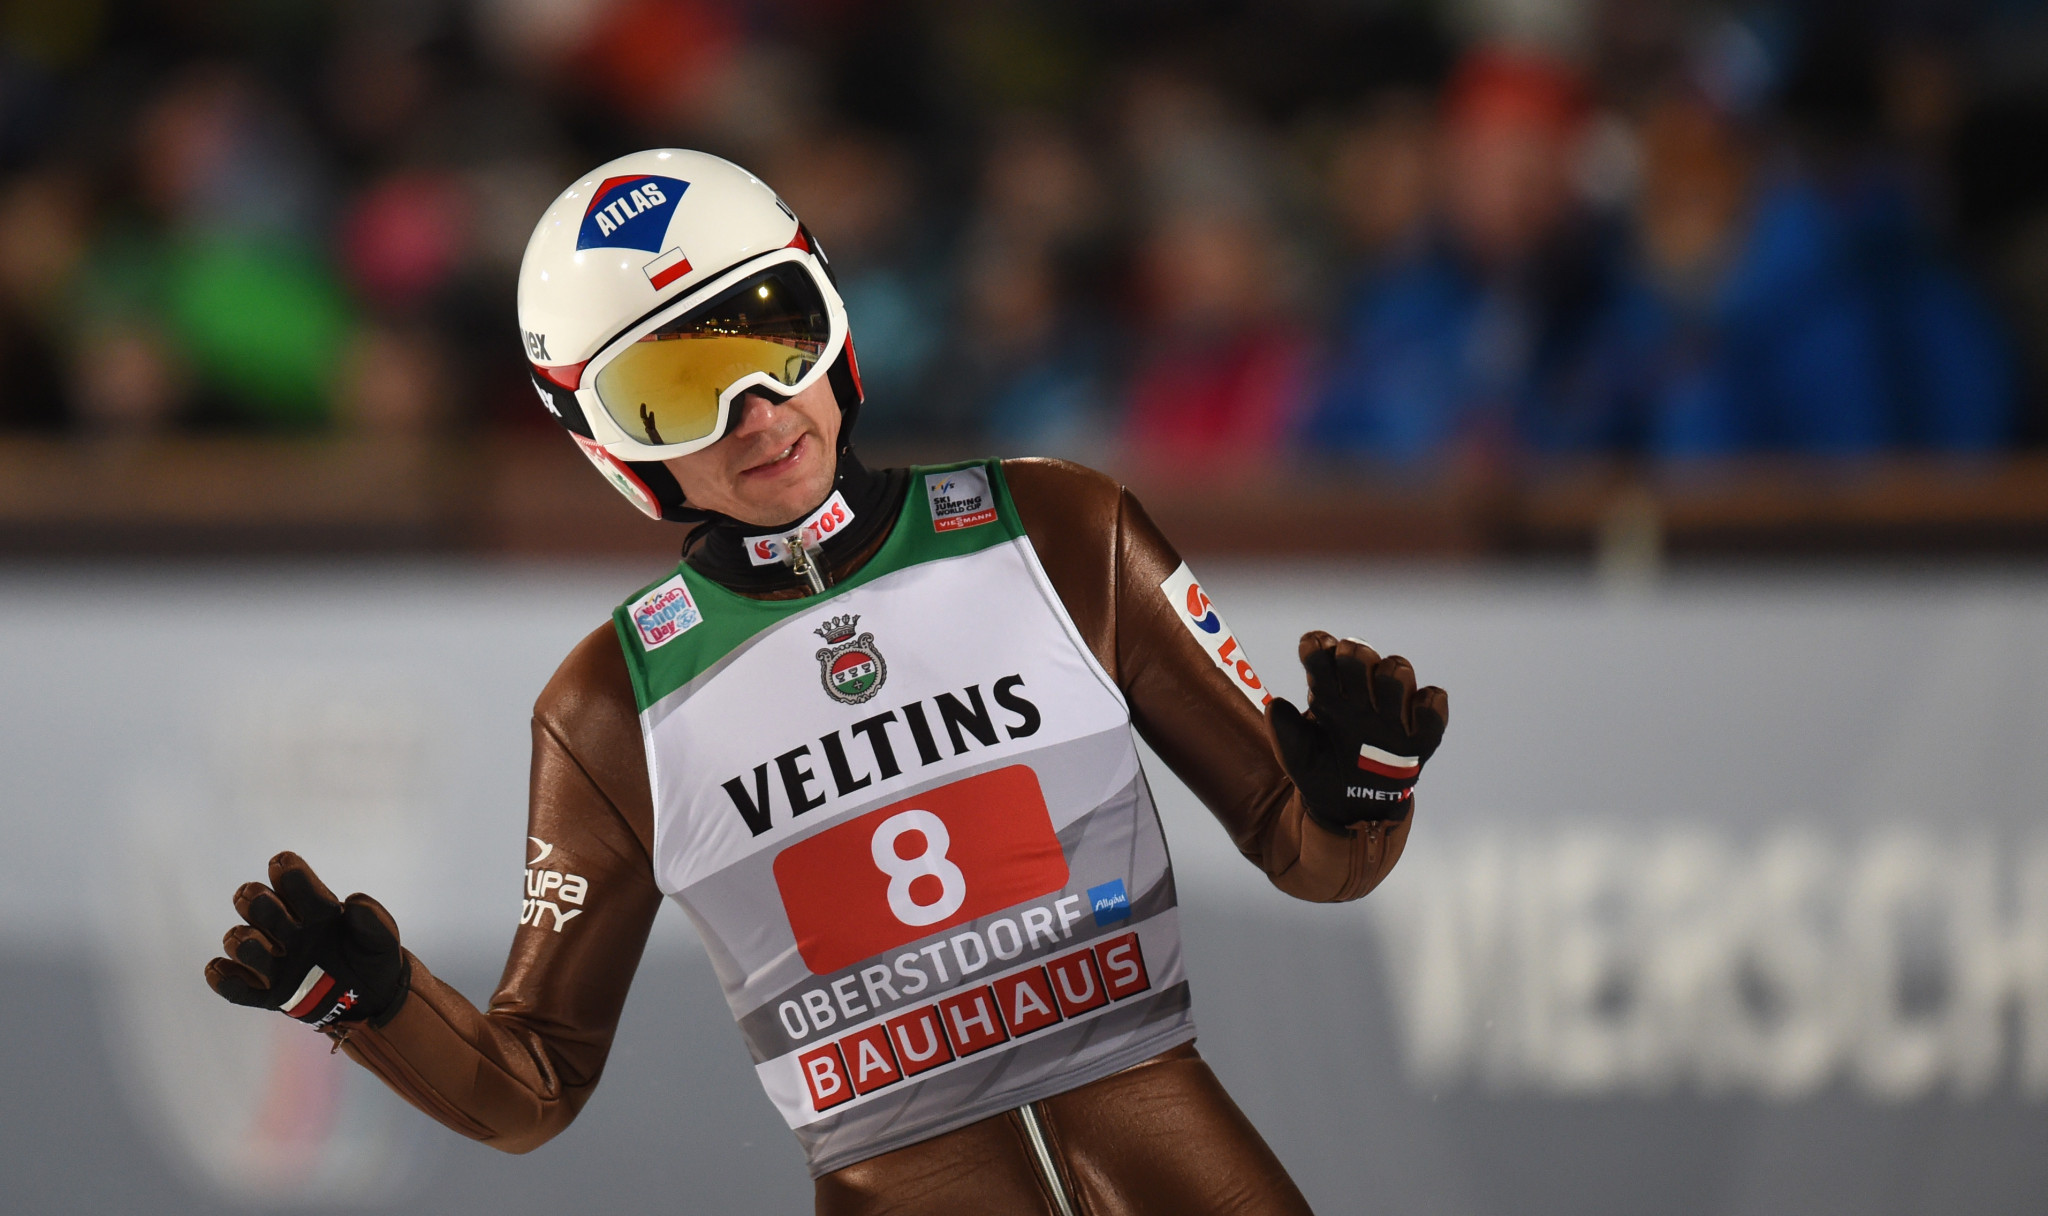 Defending Four Hills champion Kamil Stoch currently sits in sixth place overall ©Getty Images